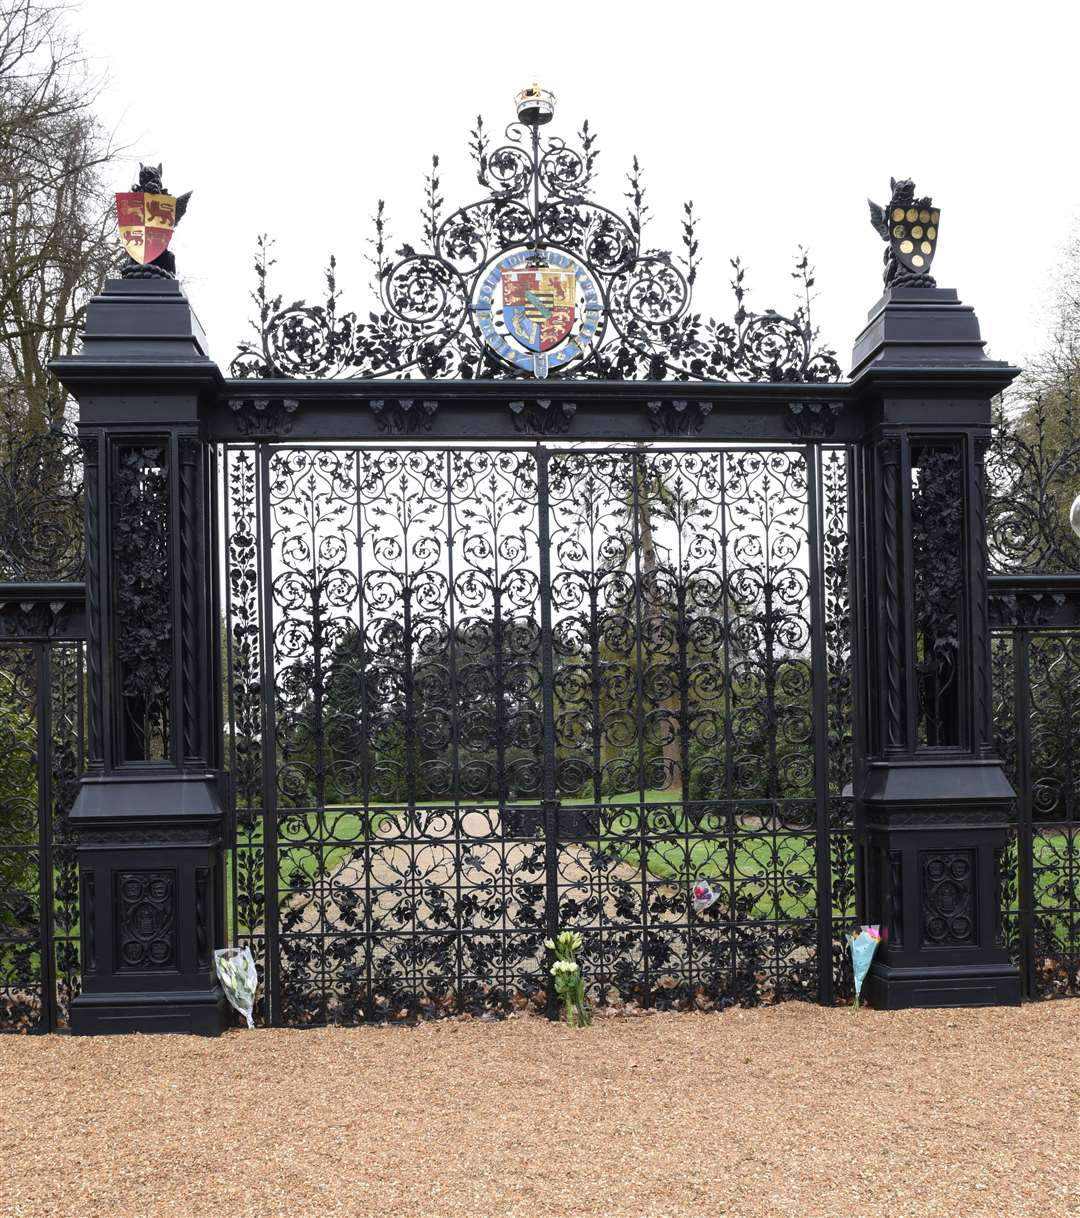 The Scene on the Royal Estate at Sandringham, following the announcement that HRH Duke of Edinburgh has died aged 99 today (Friday 9th April 2021)..Flowers have been placed at the Norwich Gates Sandrington. (46007819)